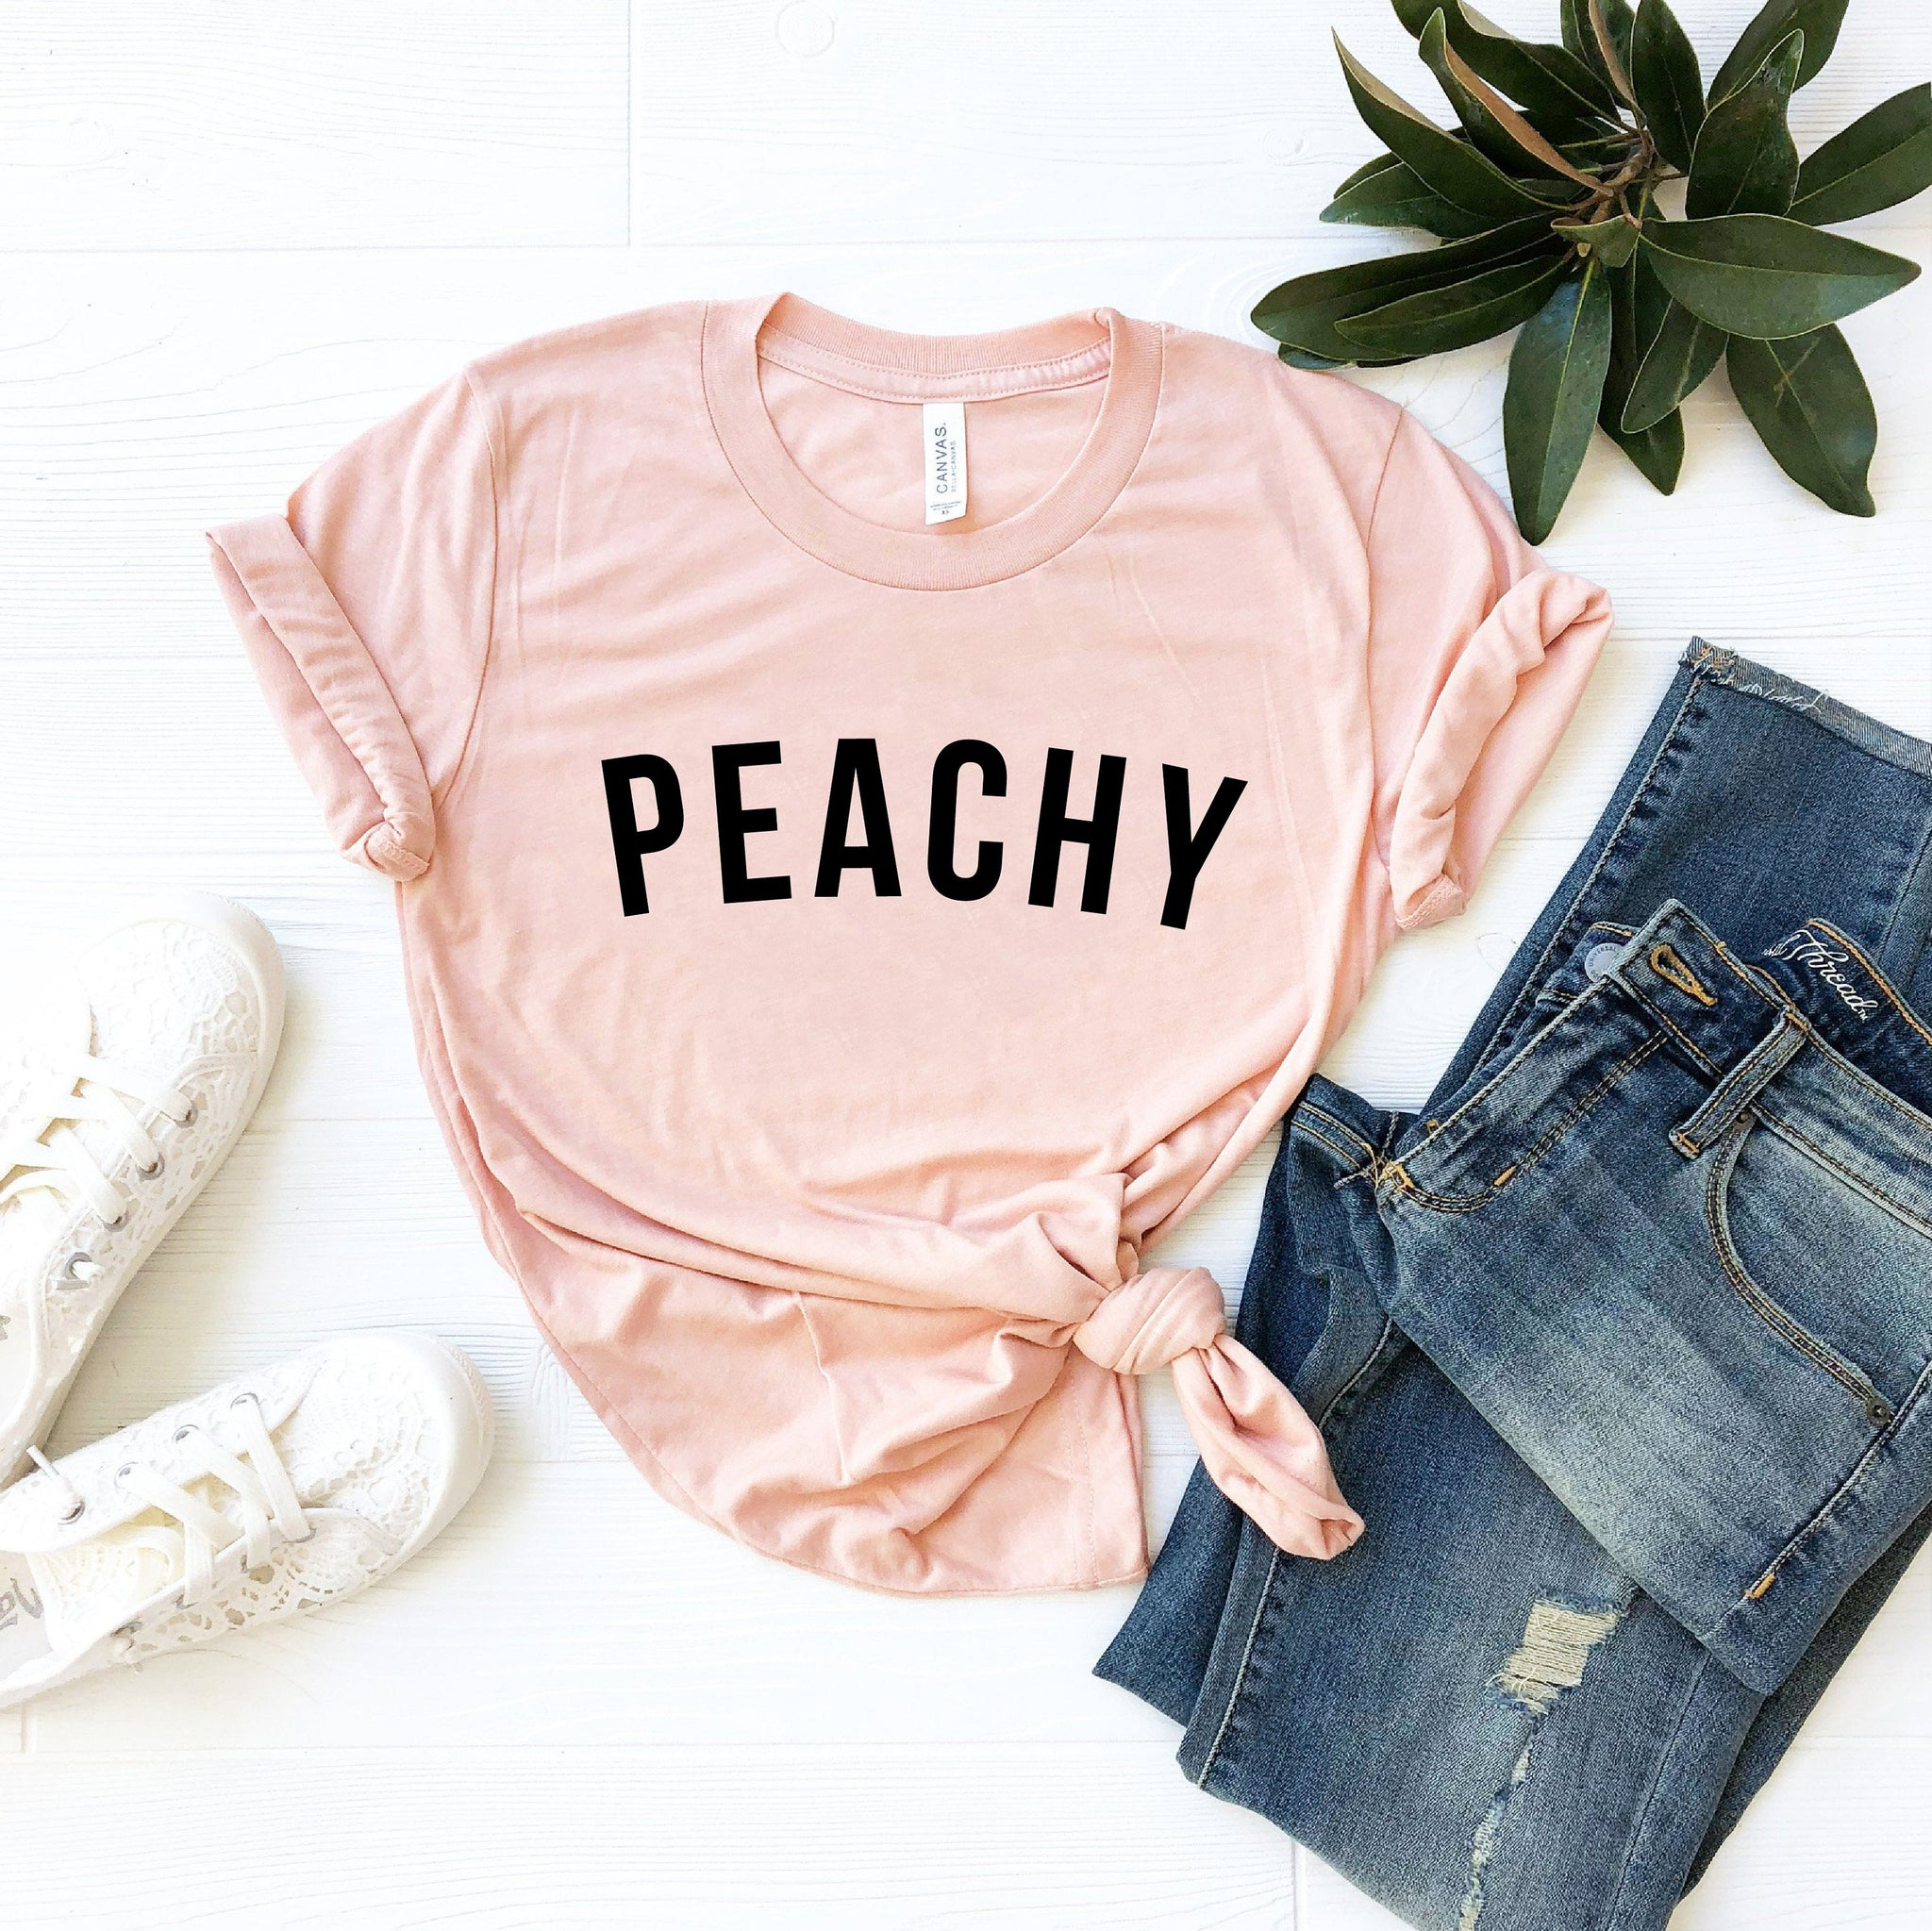 Peachy T-Shirt (Curved Text)